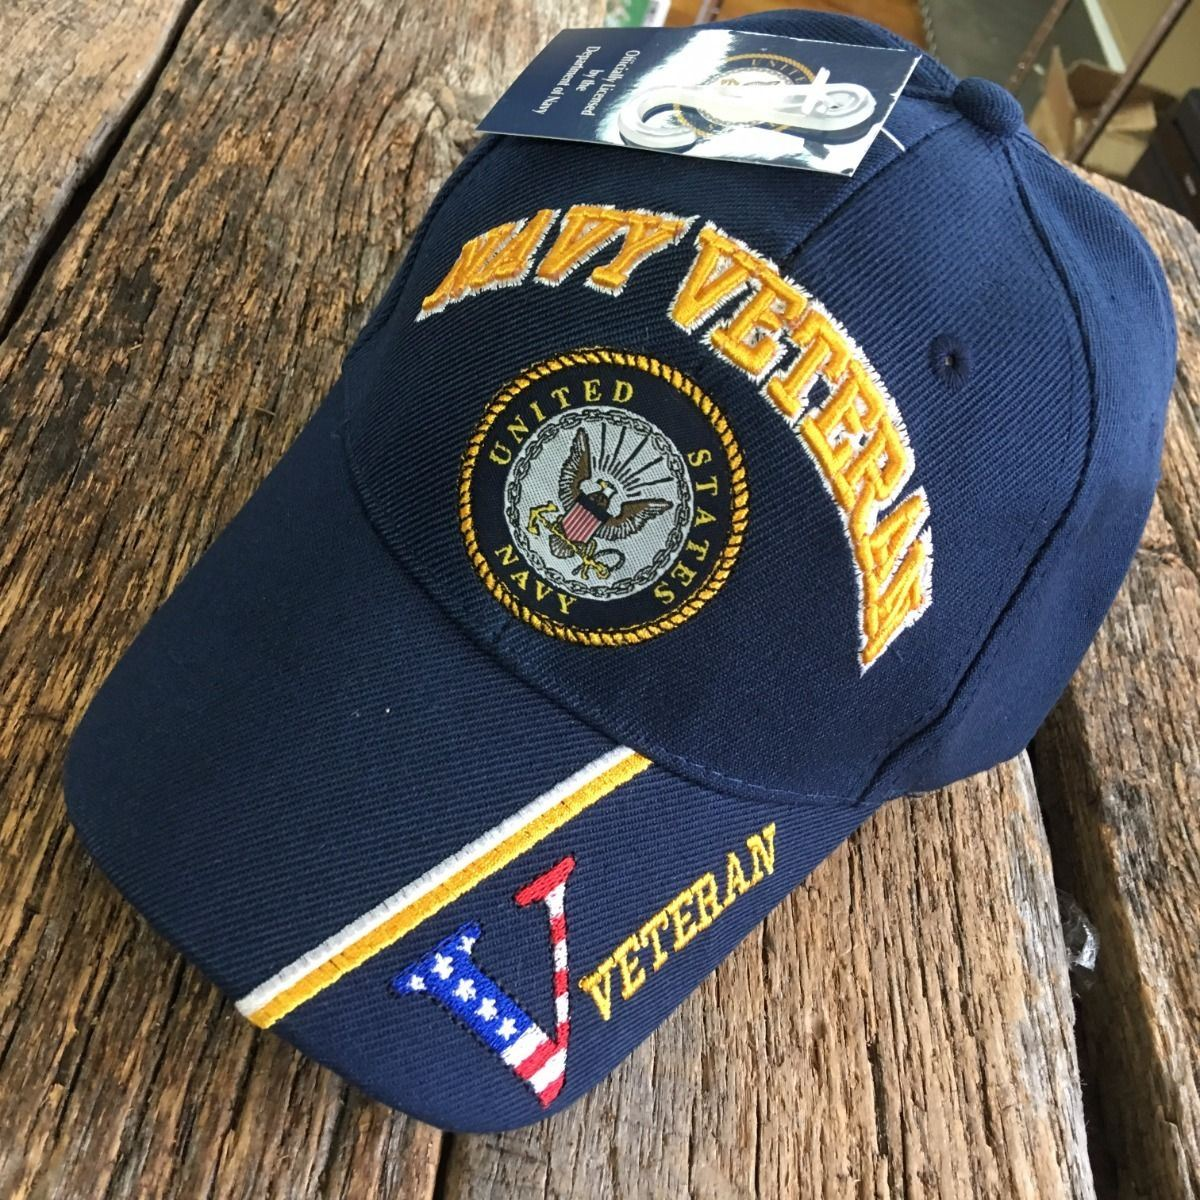 Details about BLUE US Navy VETERAN LICENESED Embroidered Ball Cap Baseball  Cap Hat U.S. Navy 883cda5fe06